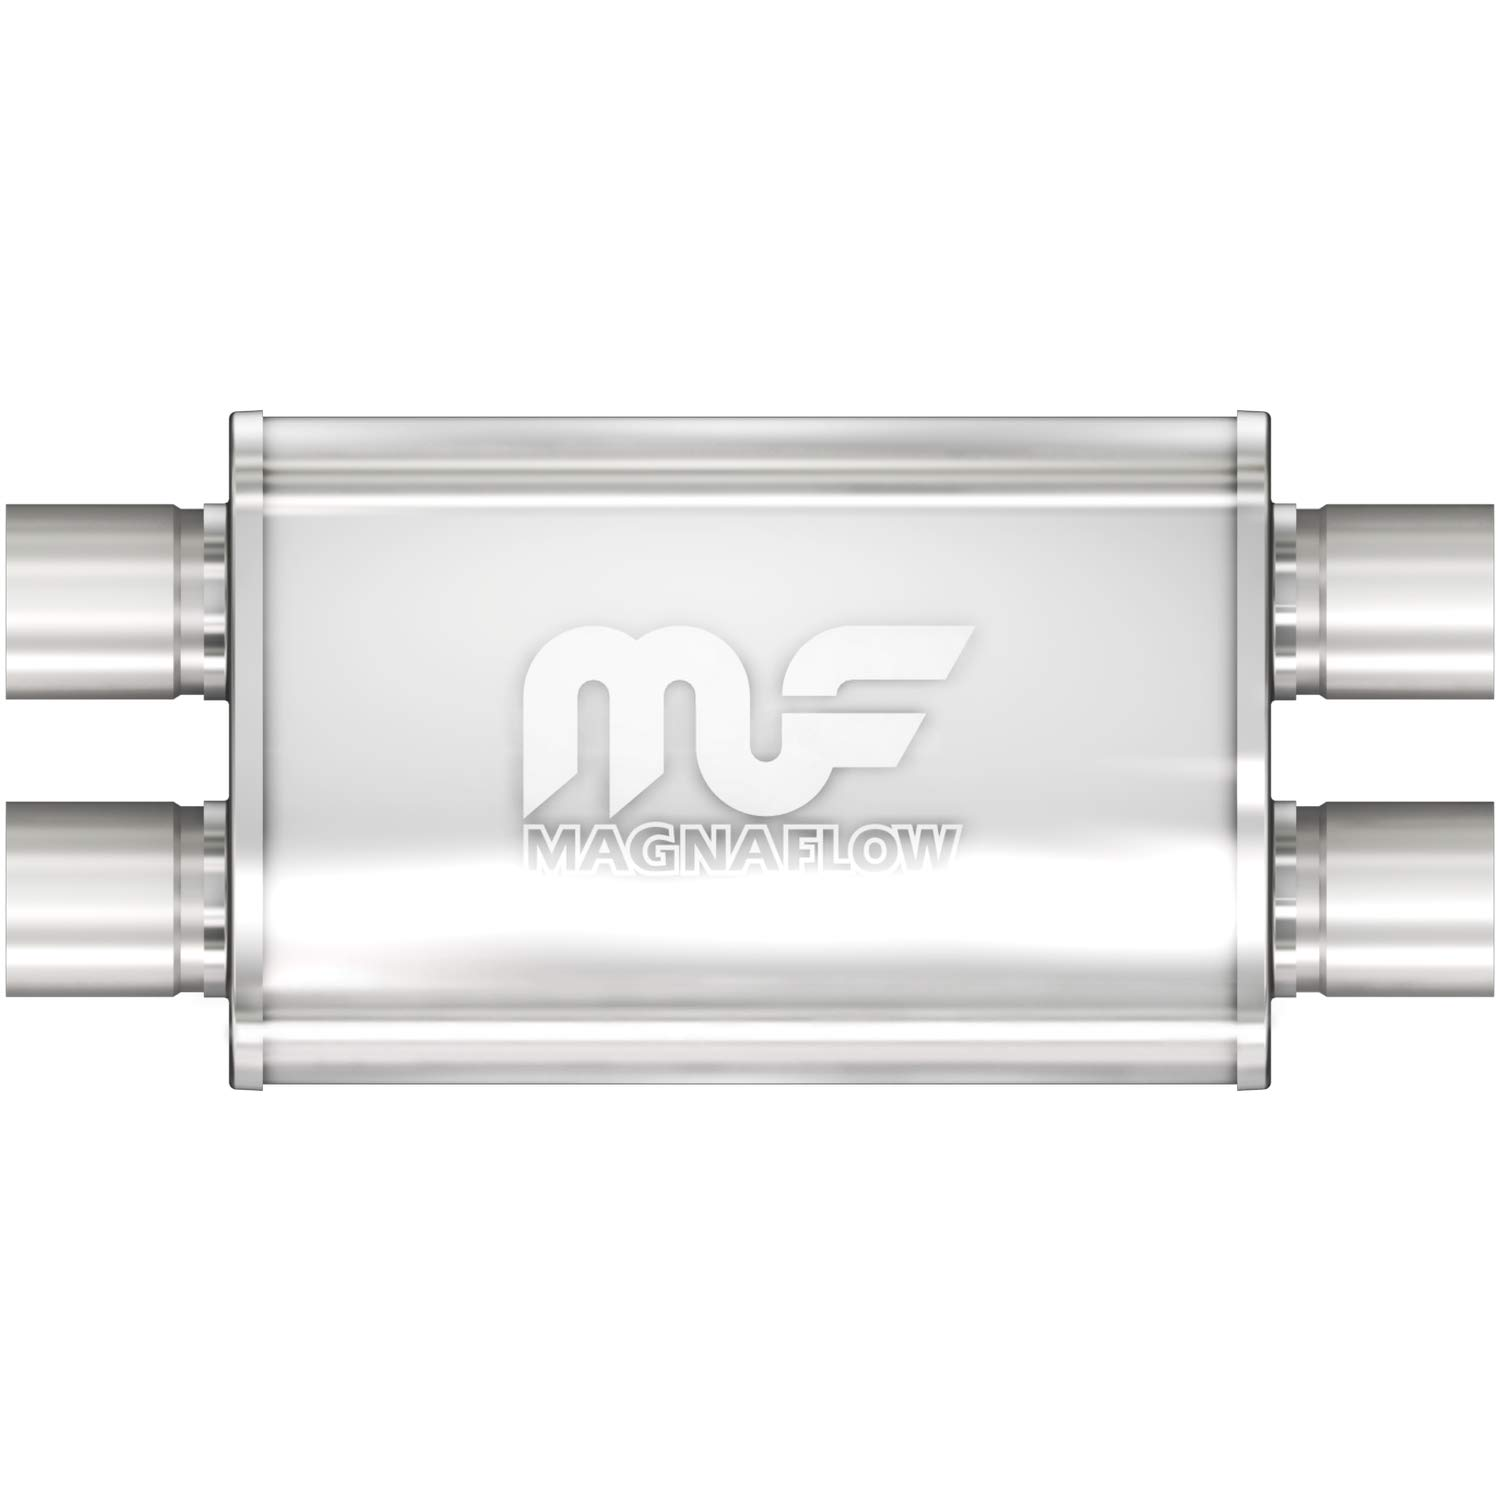 MagnaFlow 11386 Exhaust Muffler by MagnaFlow Exhaust Products (Image #1)